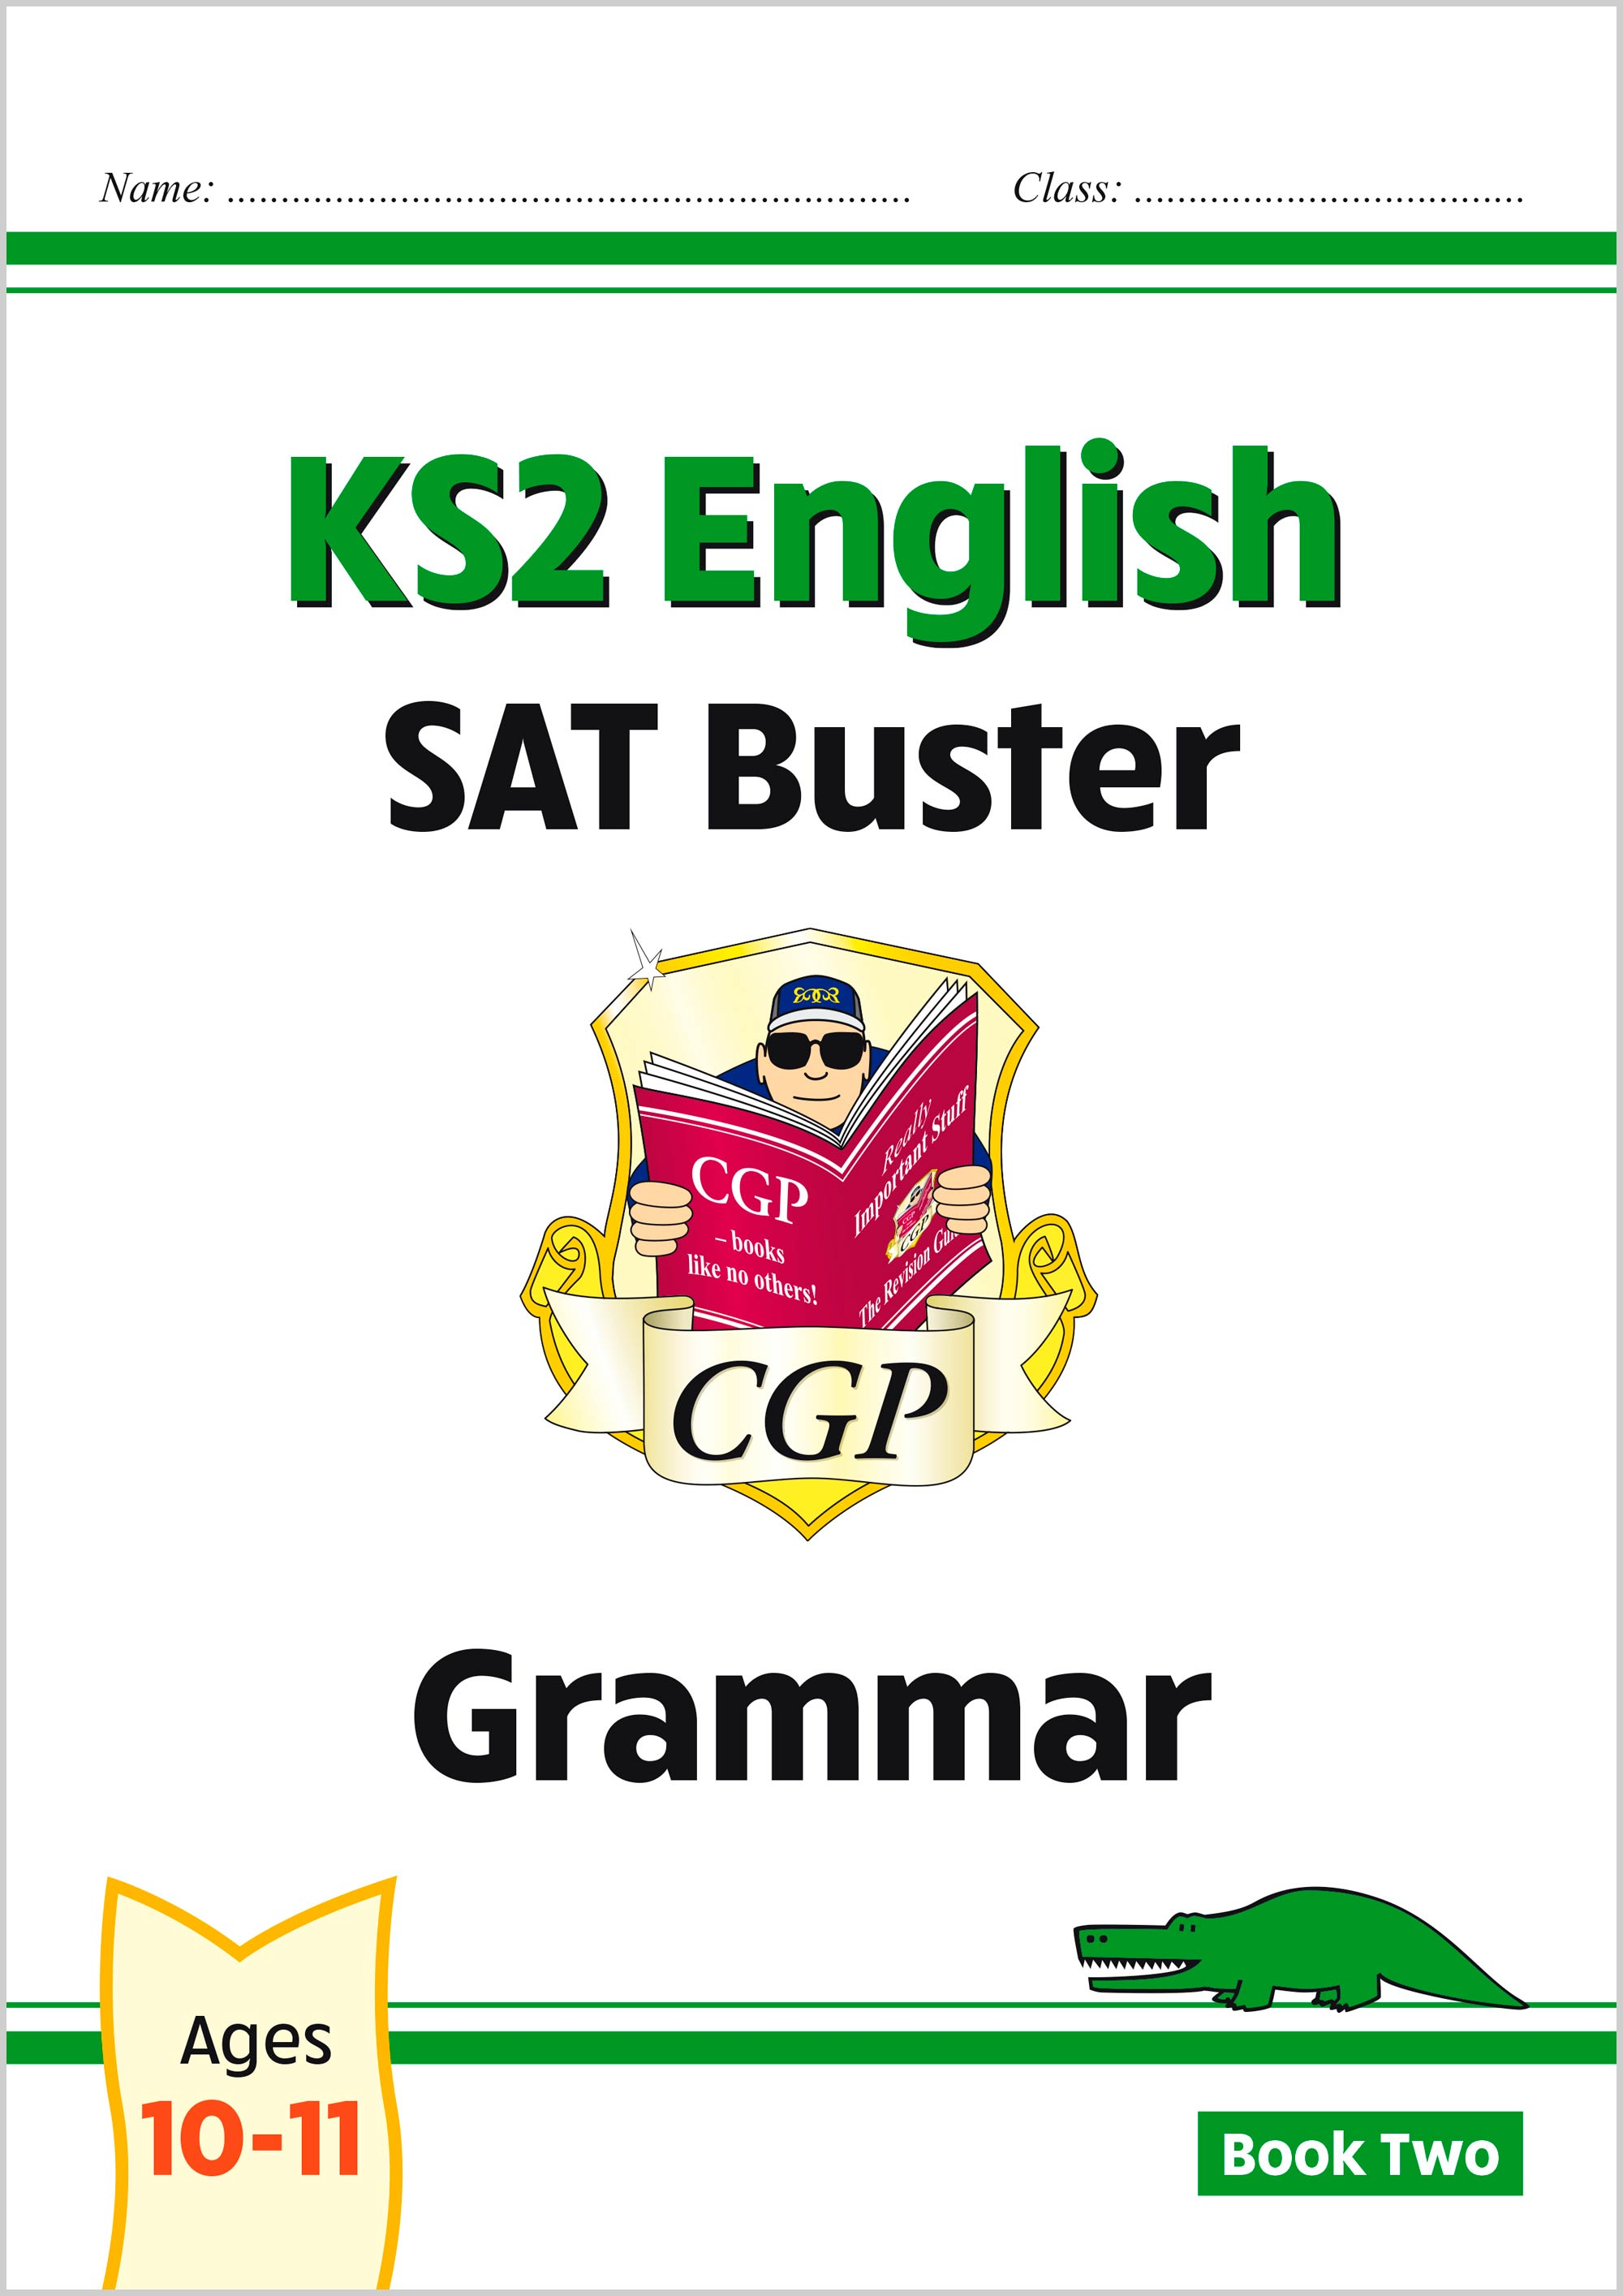 E6G223 - New KS2 English SAT Buster: Grammar - Book 2 (for the 2021 tests)